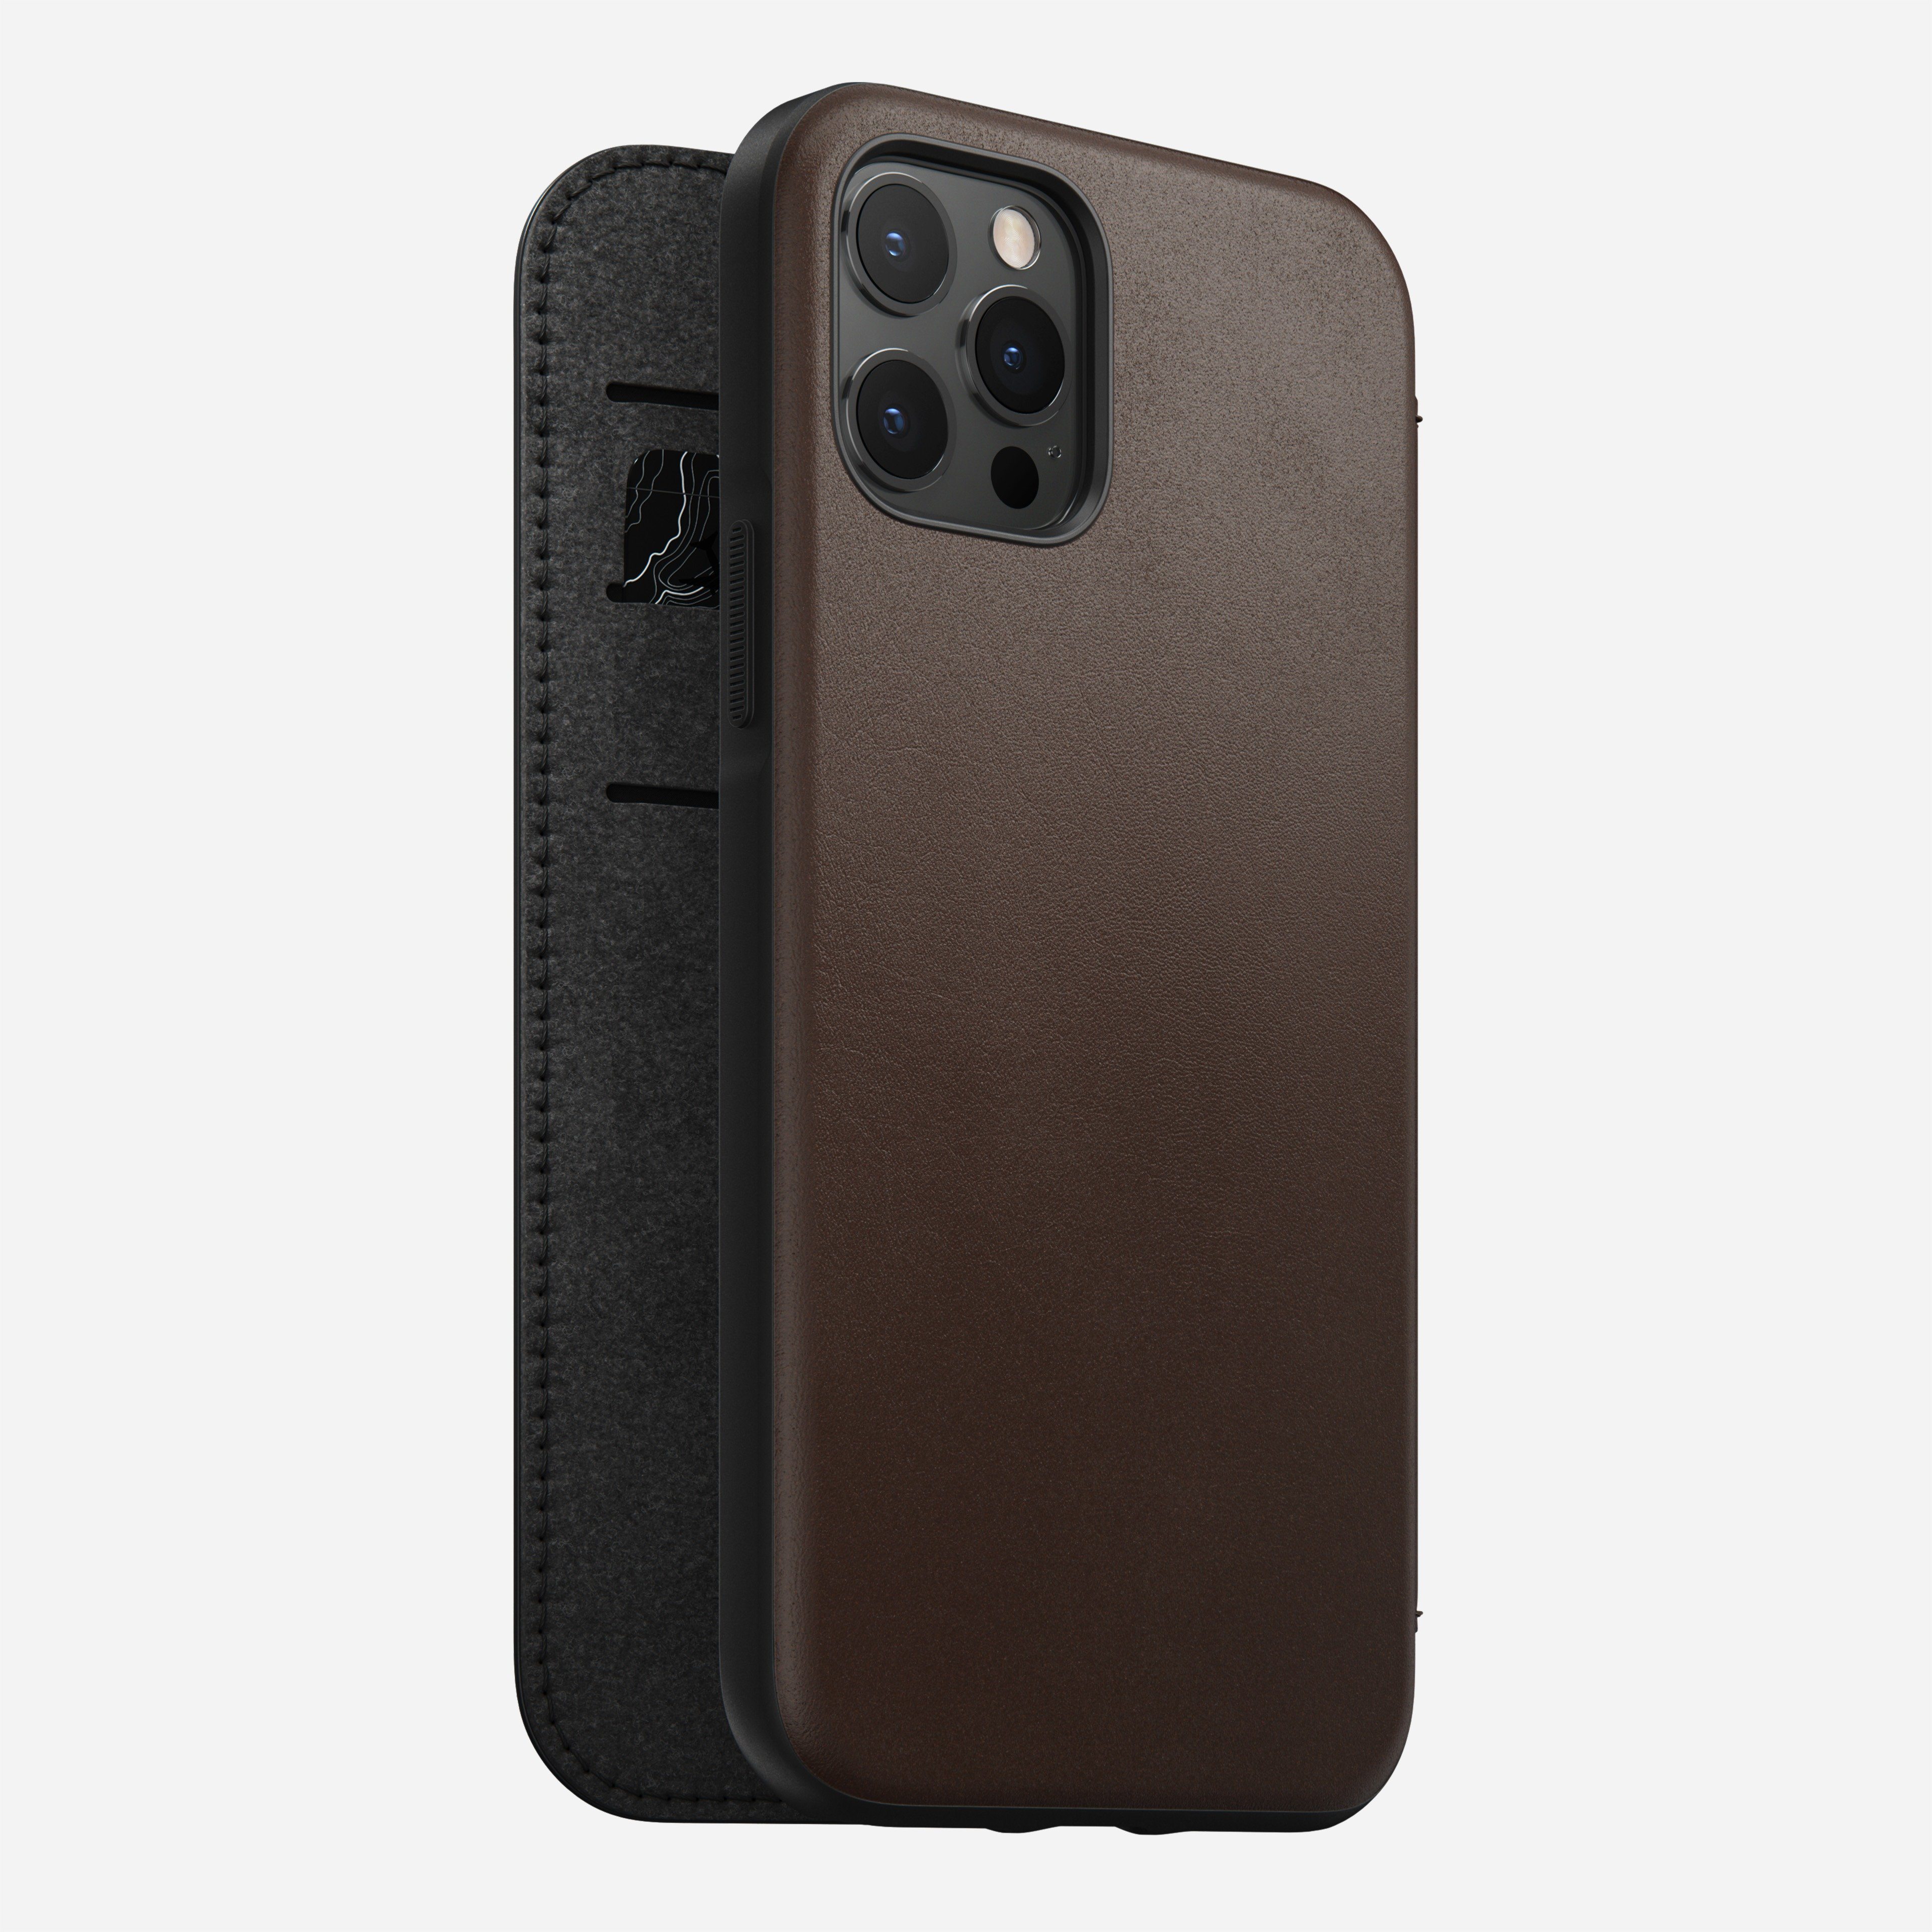 Rugged folio horween leather rustic brown iphone 12 pro